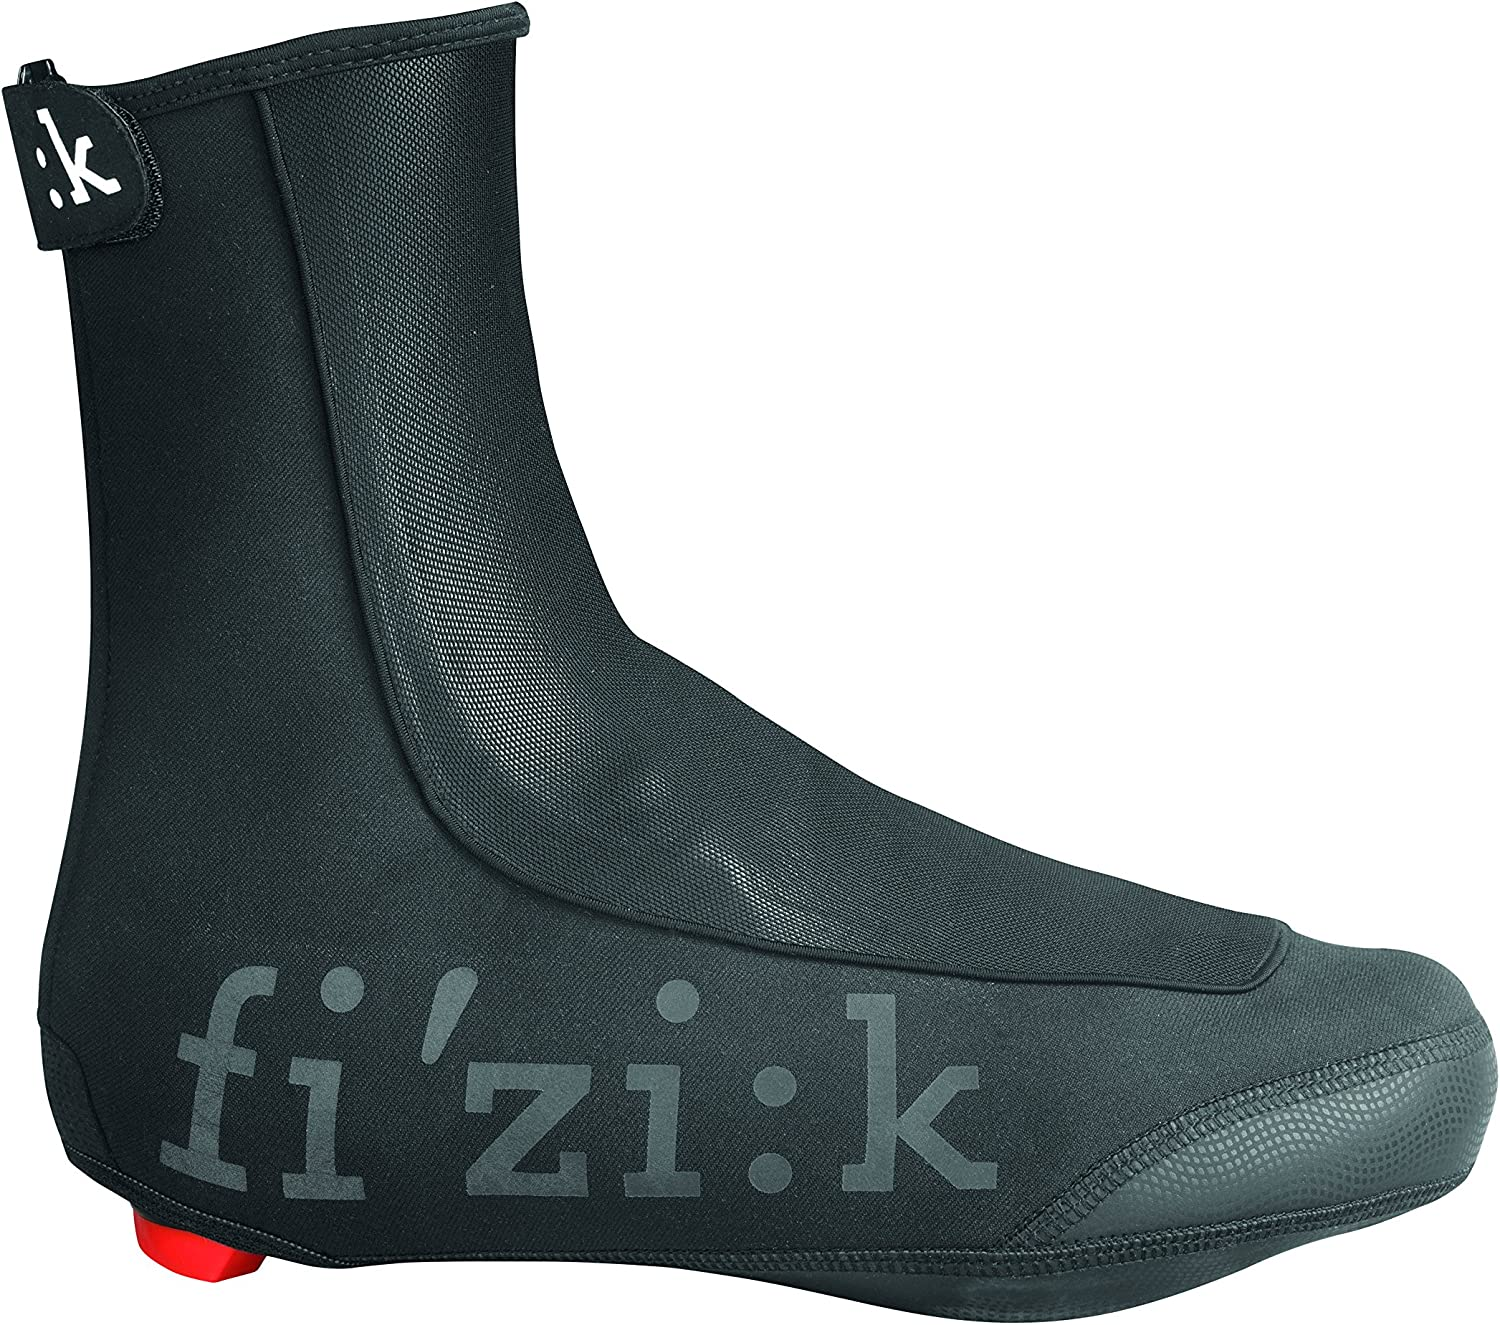 Unisex Shimano Cycling Shoe Cover Overshoes Winter